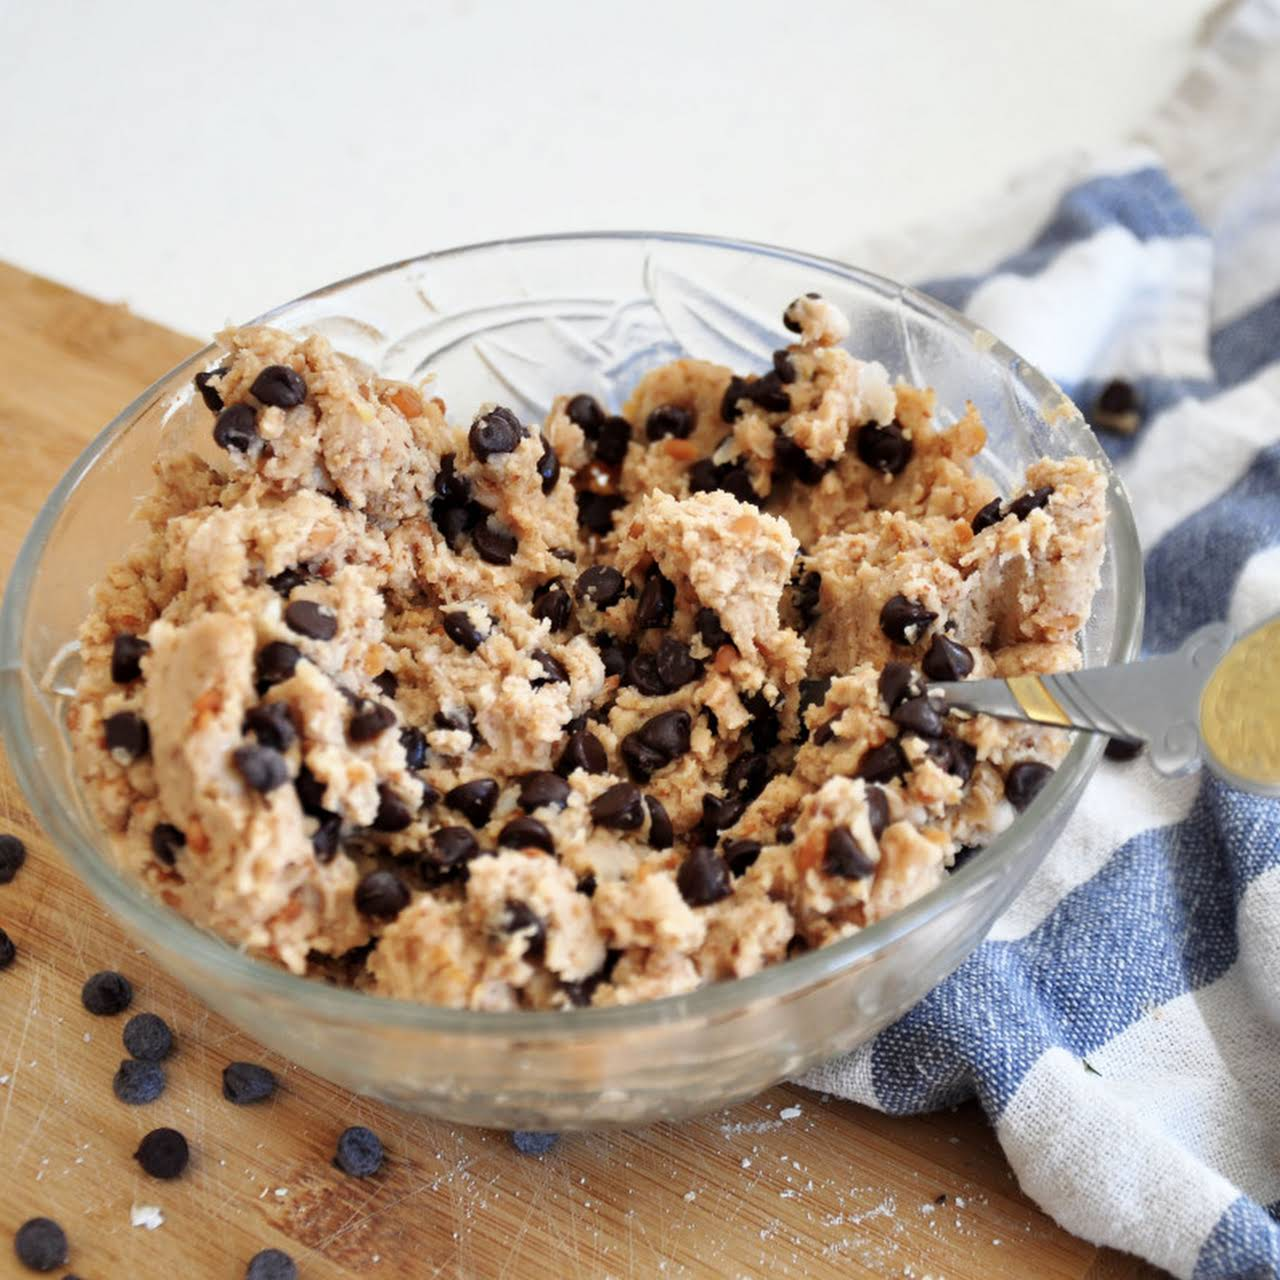 4-Ingredient Healthy Chocolate Chip Cookie Dough (Clean)